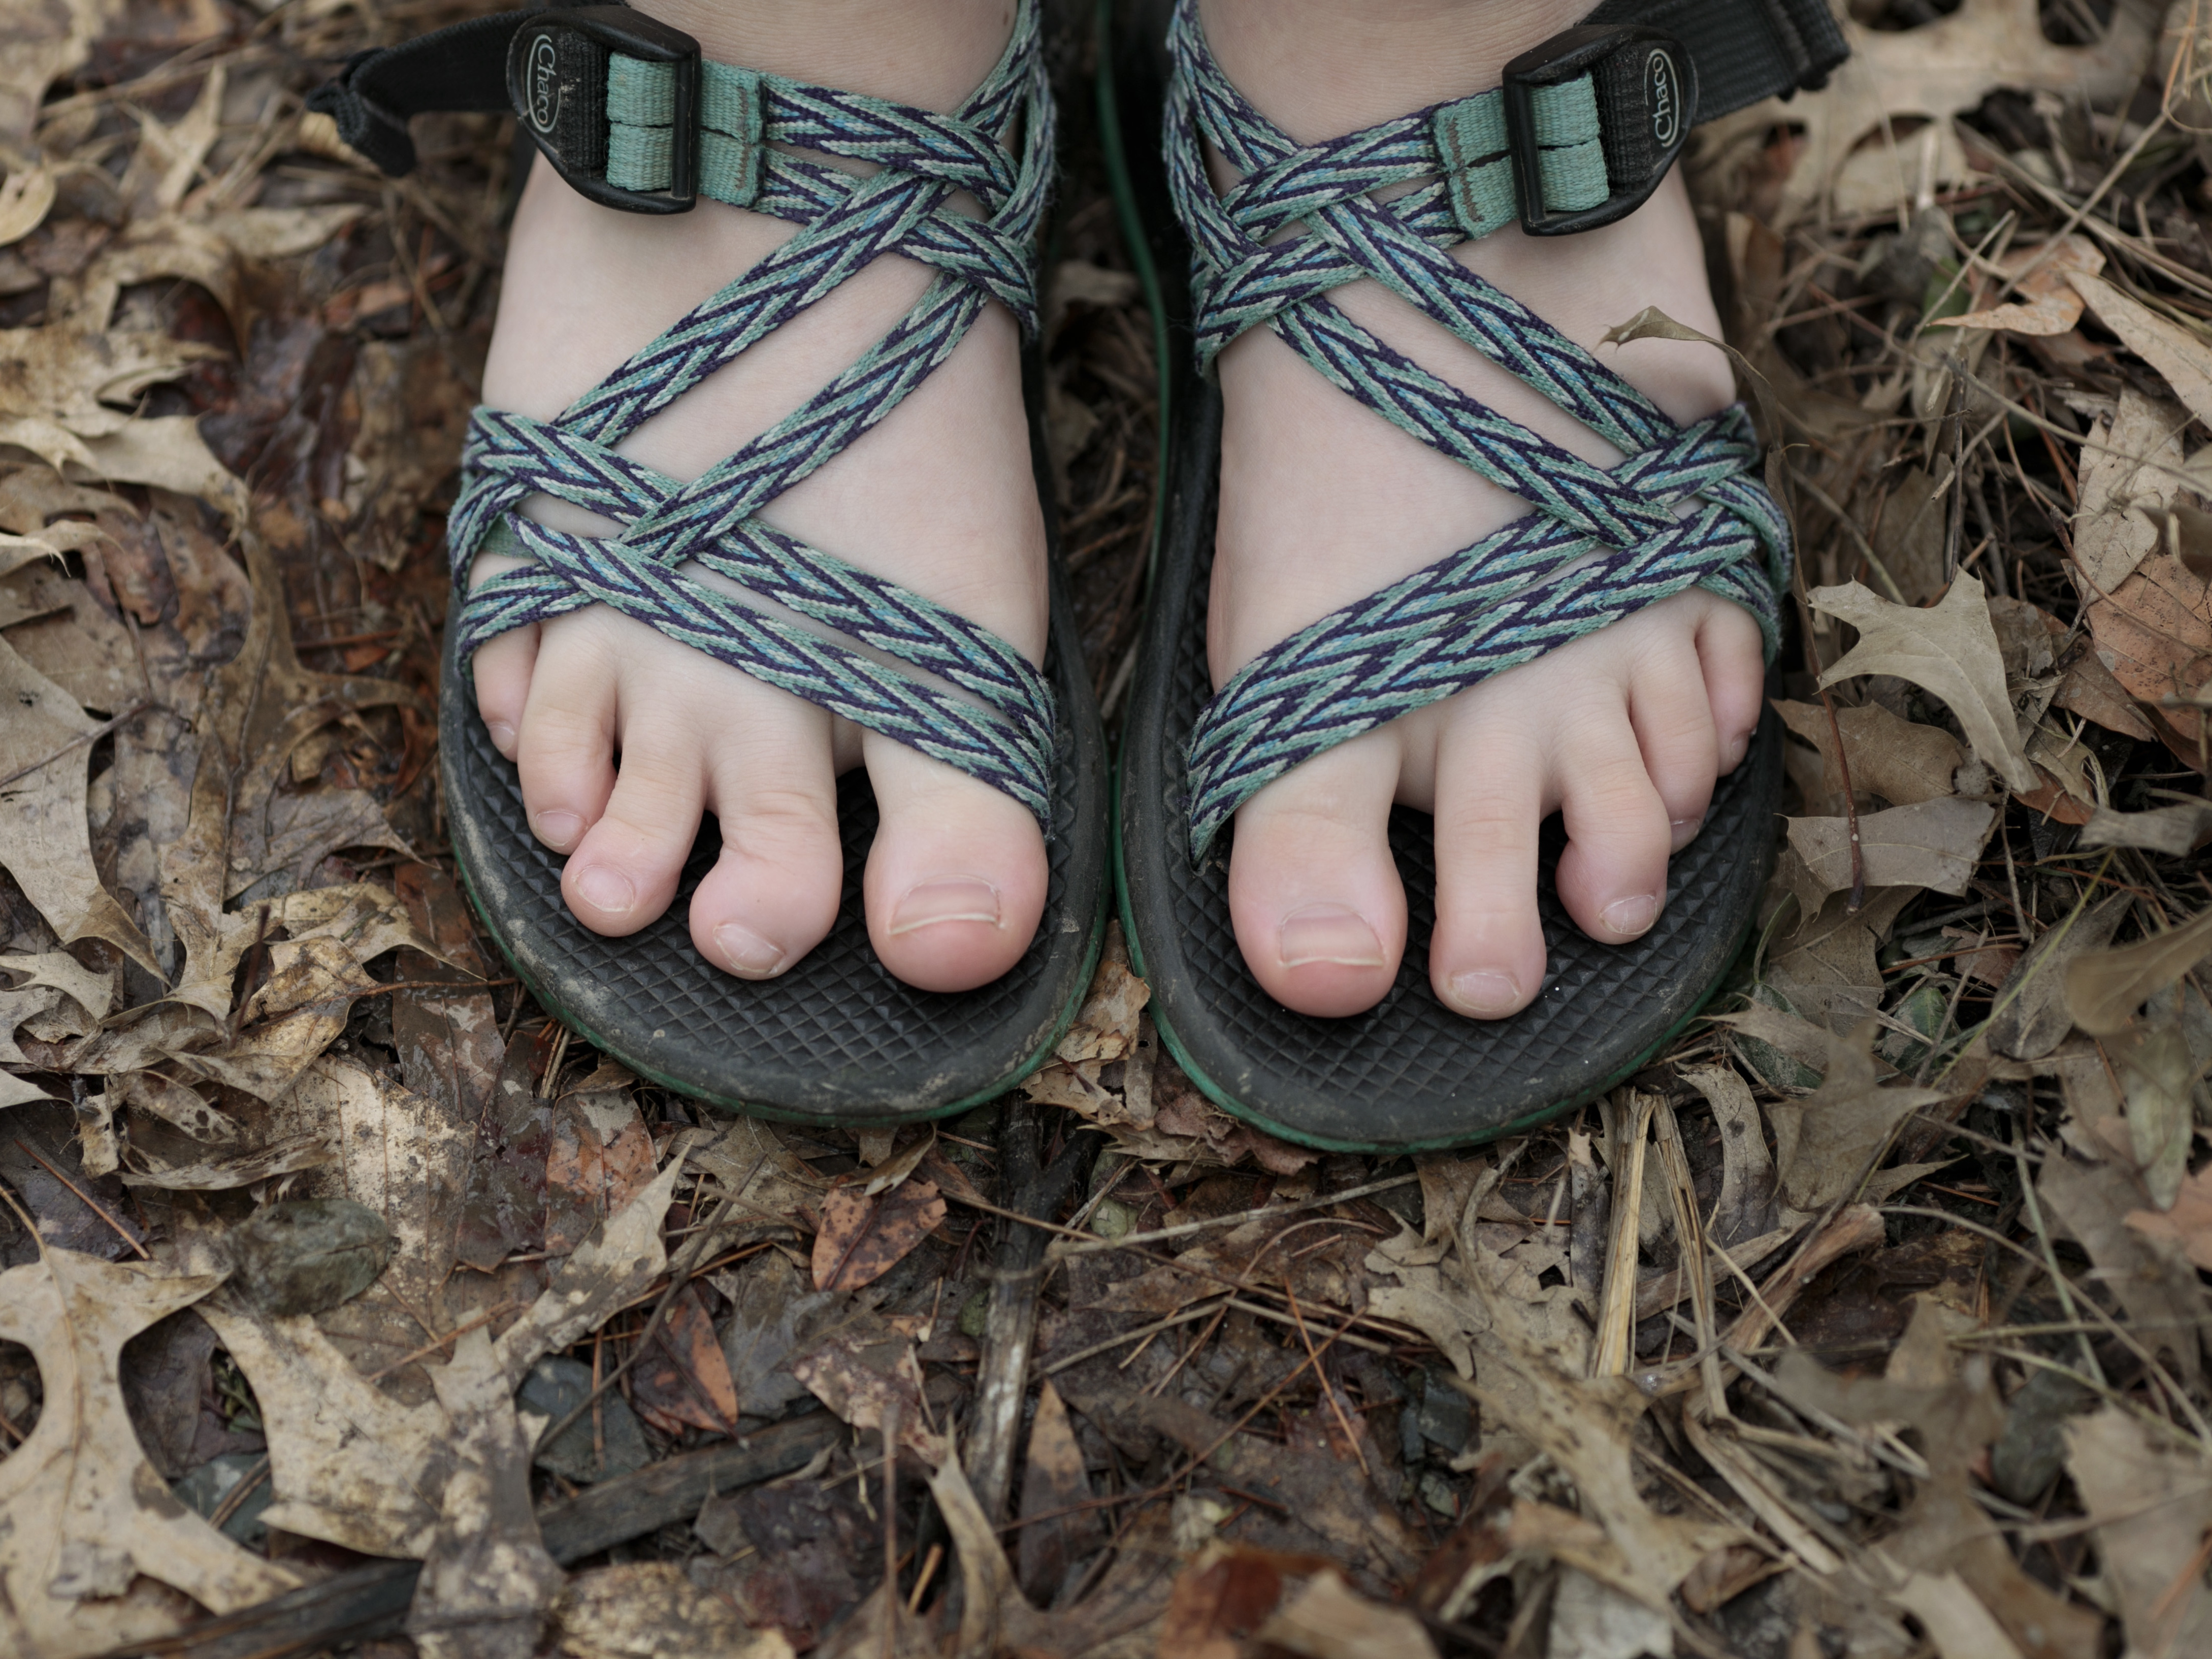 Oakley shows the toe on her right foot that a snakebite deformed when she was hiking at an Illinois summer camp in July 2018. These were the same shoes she wore when she was bitten.